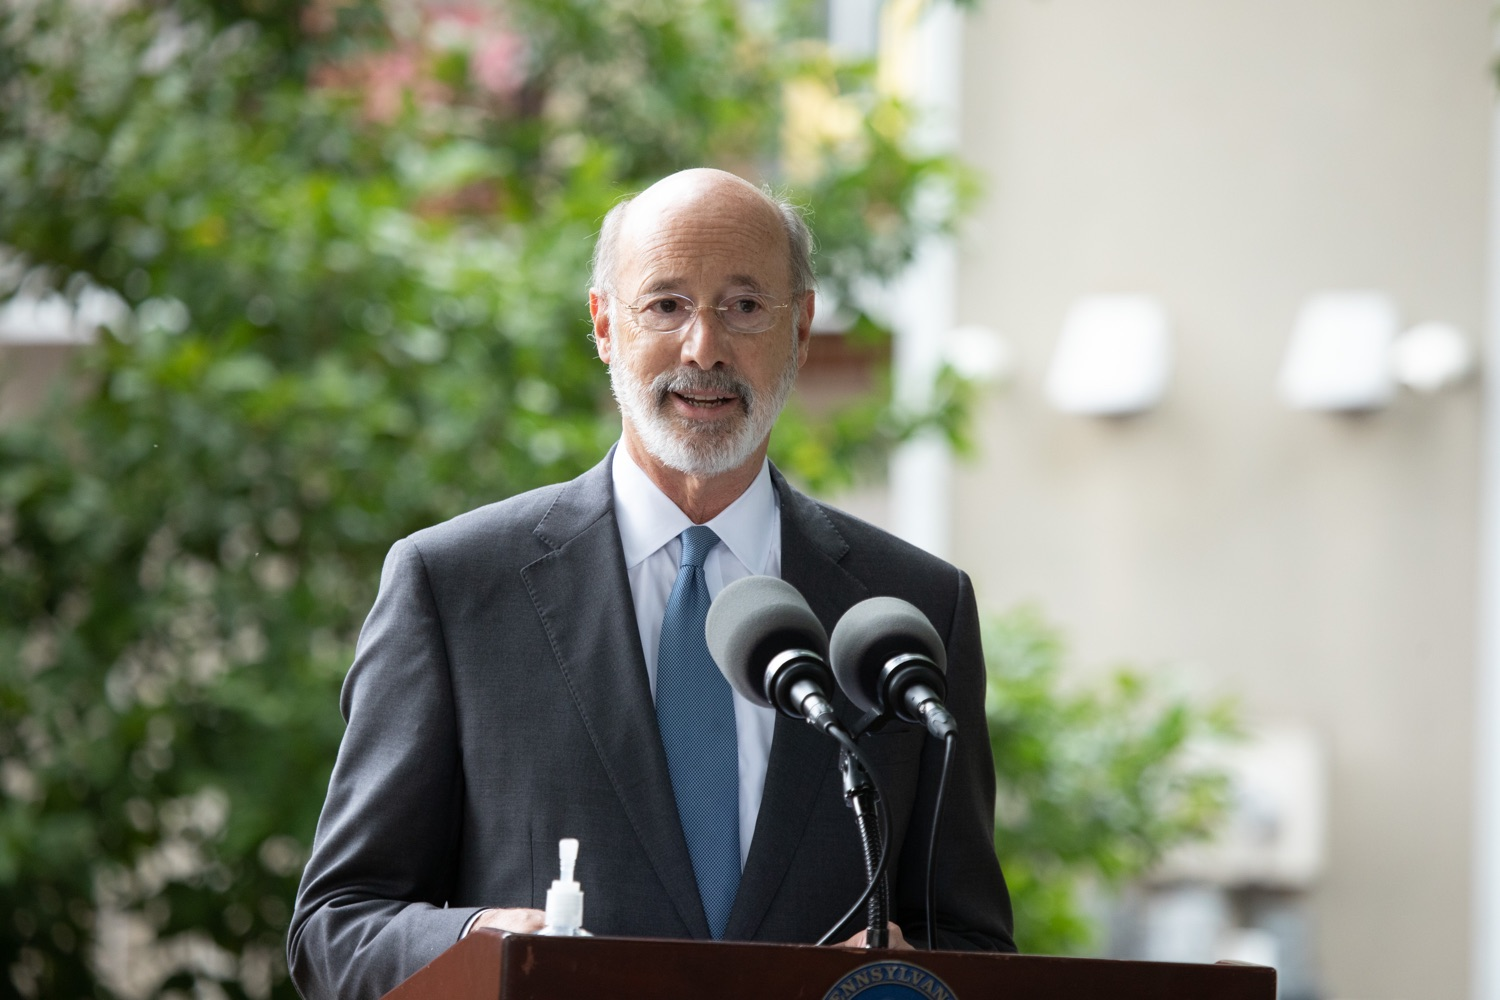 "<a href=""https://filesource.wostreaming.net/commonwealthofpa/photo/18178_GOV_Lancaster_Health_dz__09.jpg"" target=""_blank"">⇣ Download Photo<br></a>Pennsylvania Governor Tom Wolf speaking at the event.  Governor Tom Wolf today visited Lancaster Health Center, a federally qualified health center, to thank staff for their work to ensure the communitys most vulnerable receive care during COVID-19 and year-round.  Harrisburg, PA  July 24, 2020"